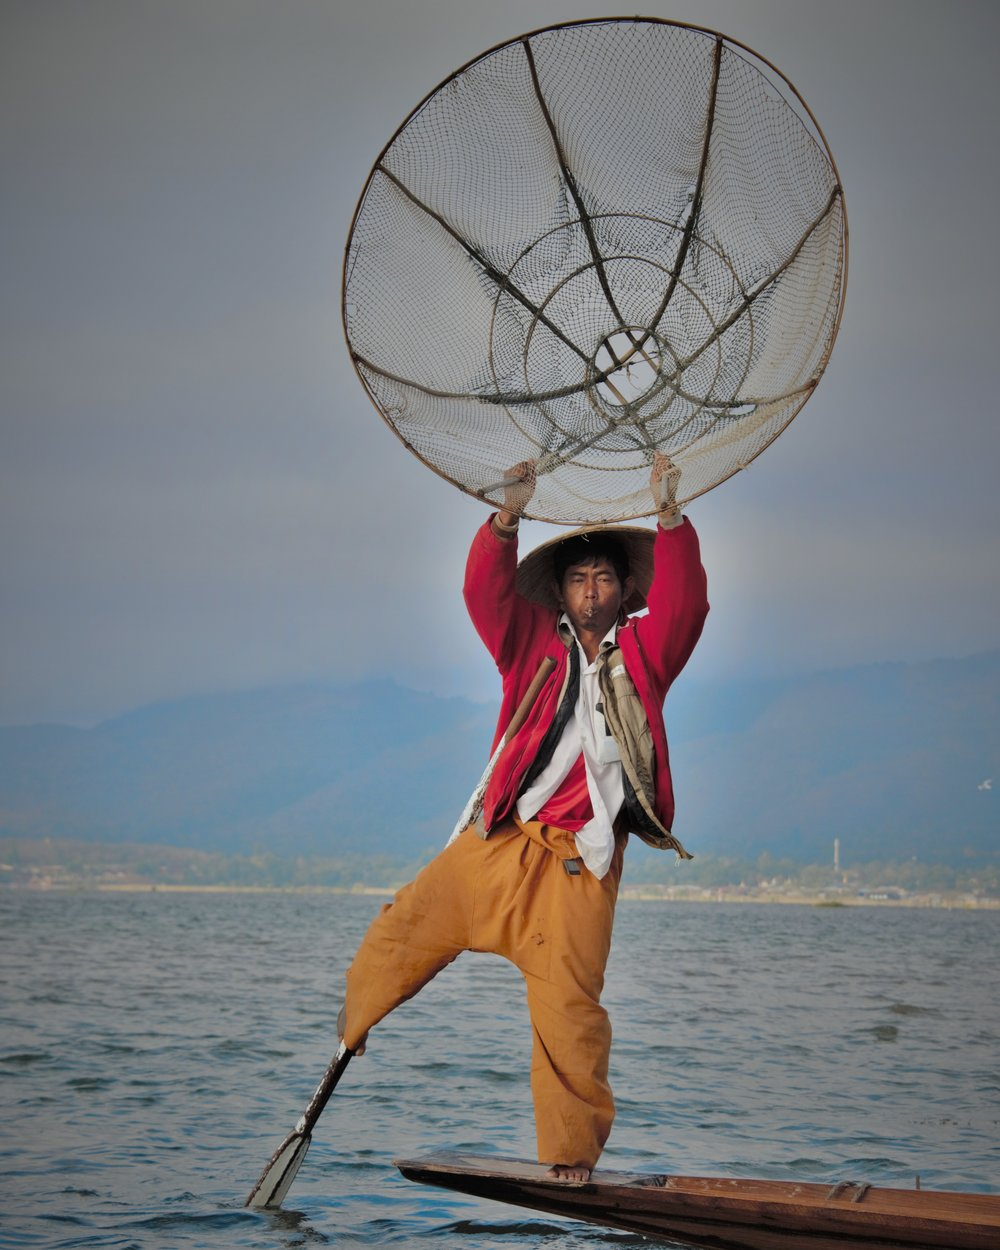 Fisherman casting net, Inle Lake